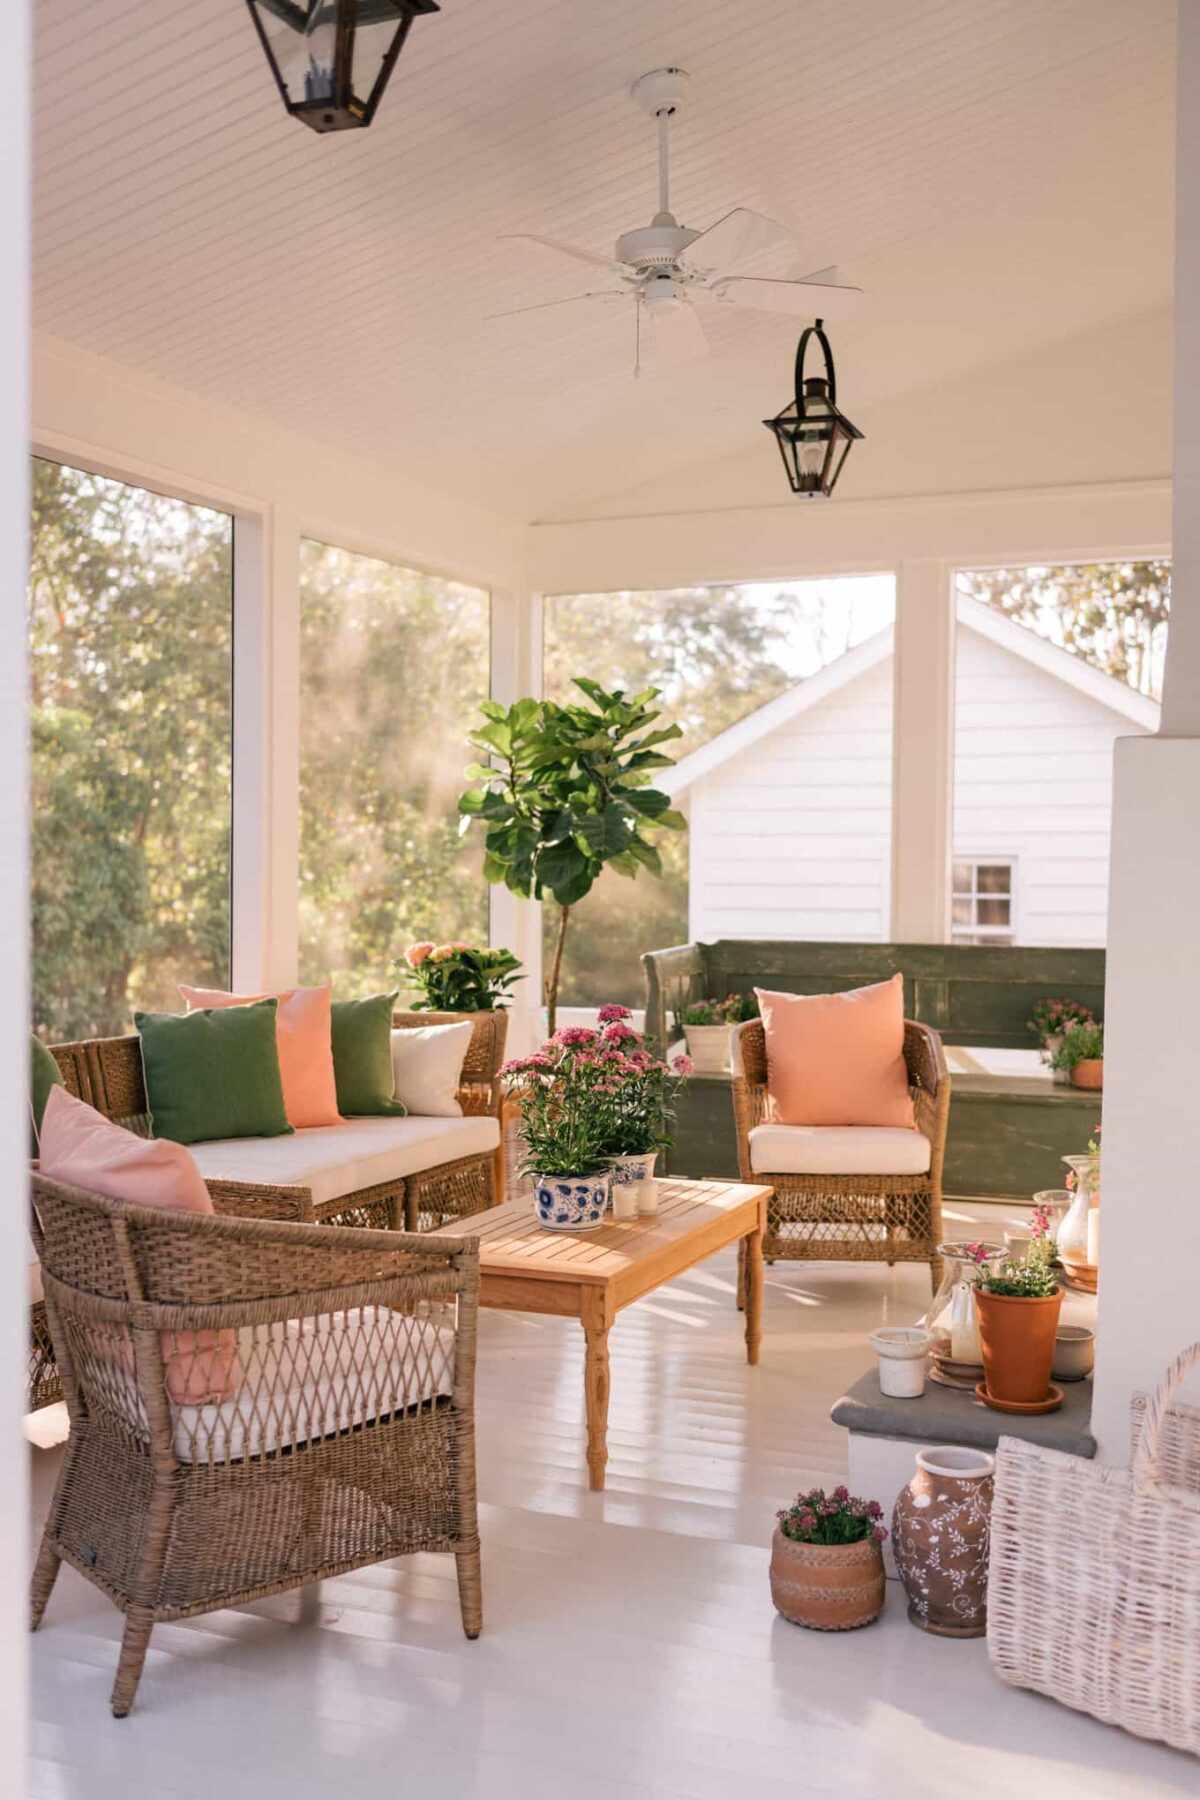 Decorating Outdoors with 2019 Summer Trends